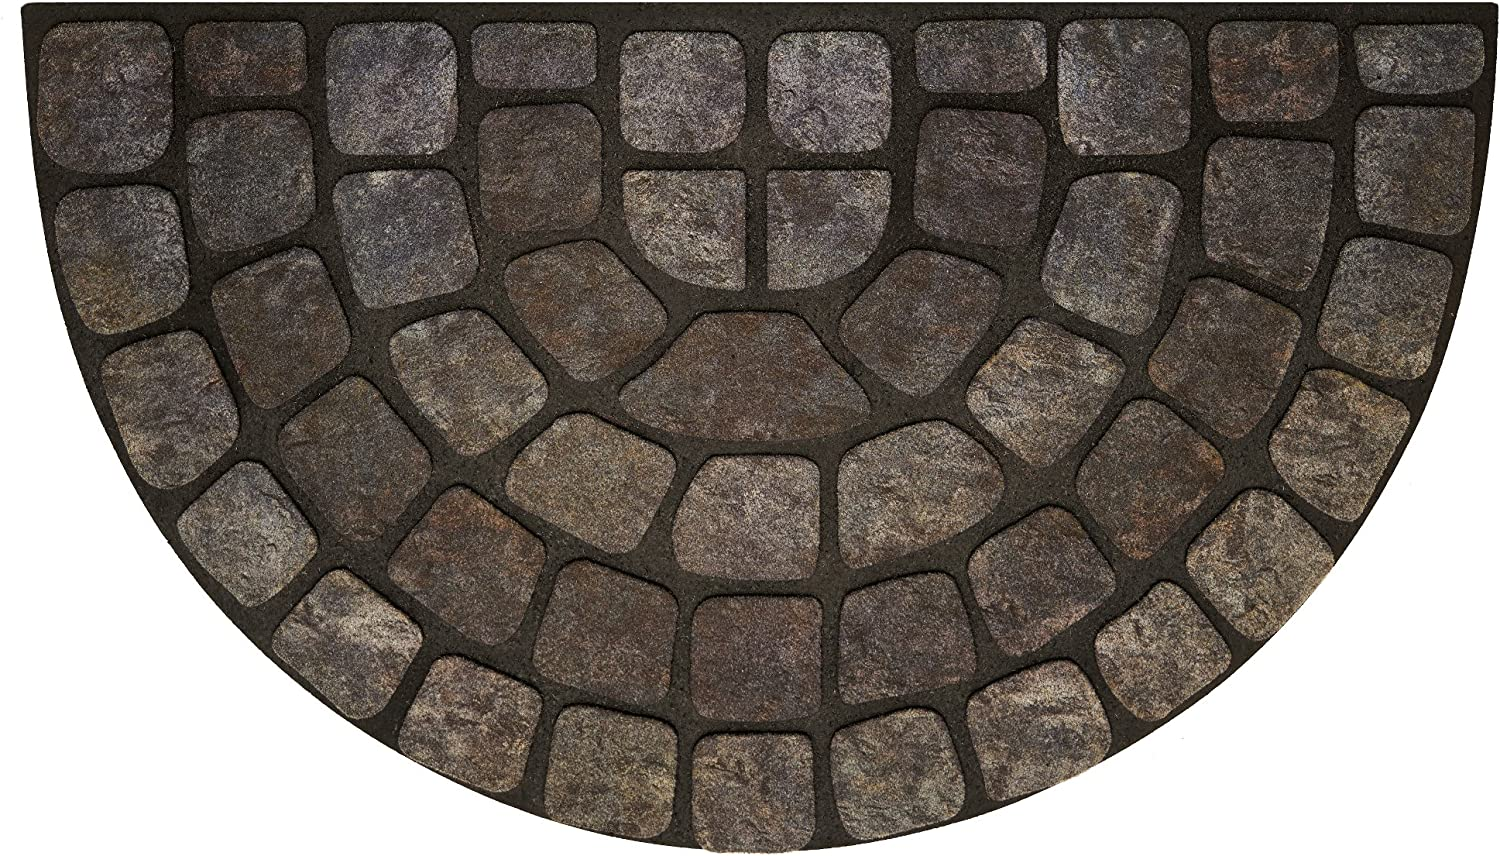 Ben&Jonah Collection Raised Rubber Mat Grey Stone Slice 18x30